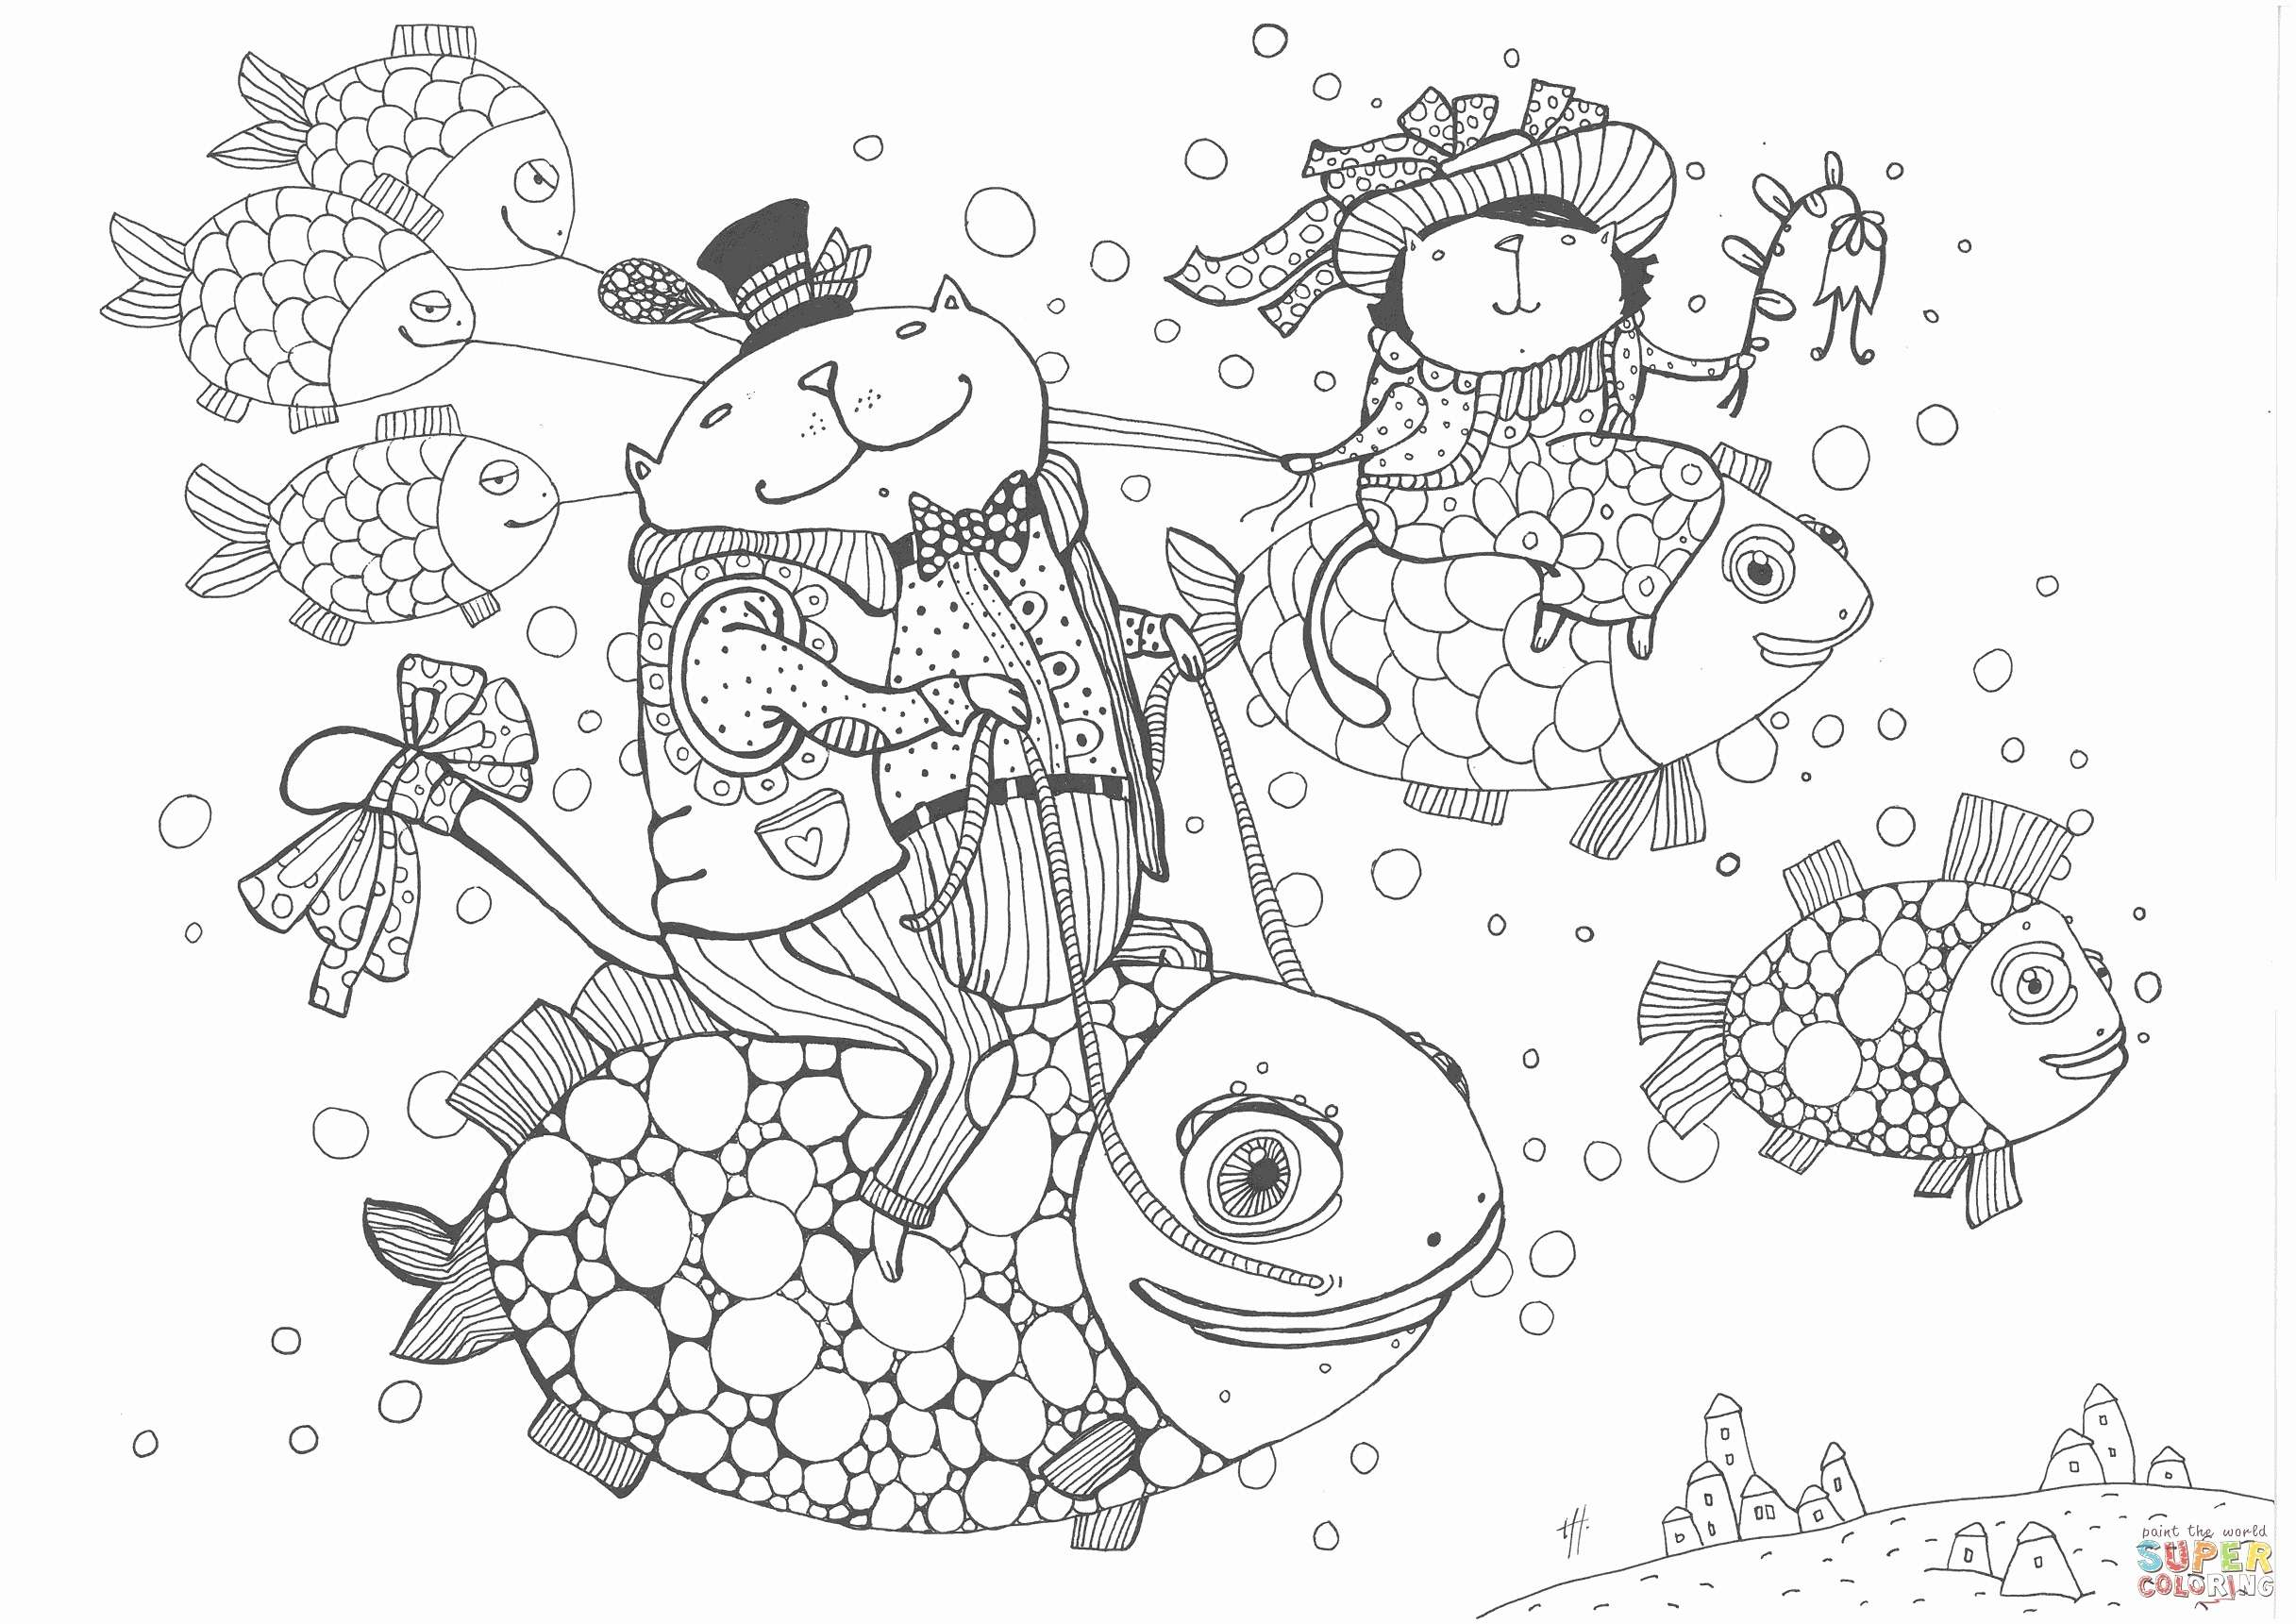 The Nightmare before Christmas Coloring Pages  to Print 4d - Free Download